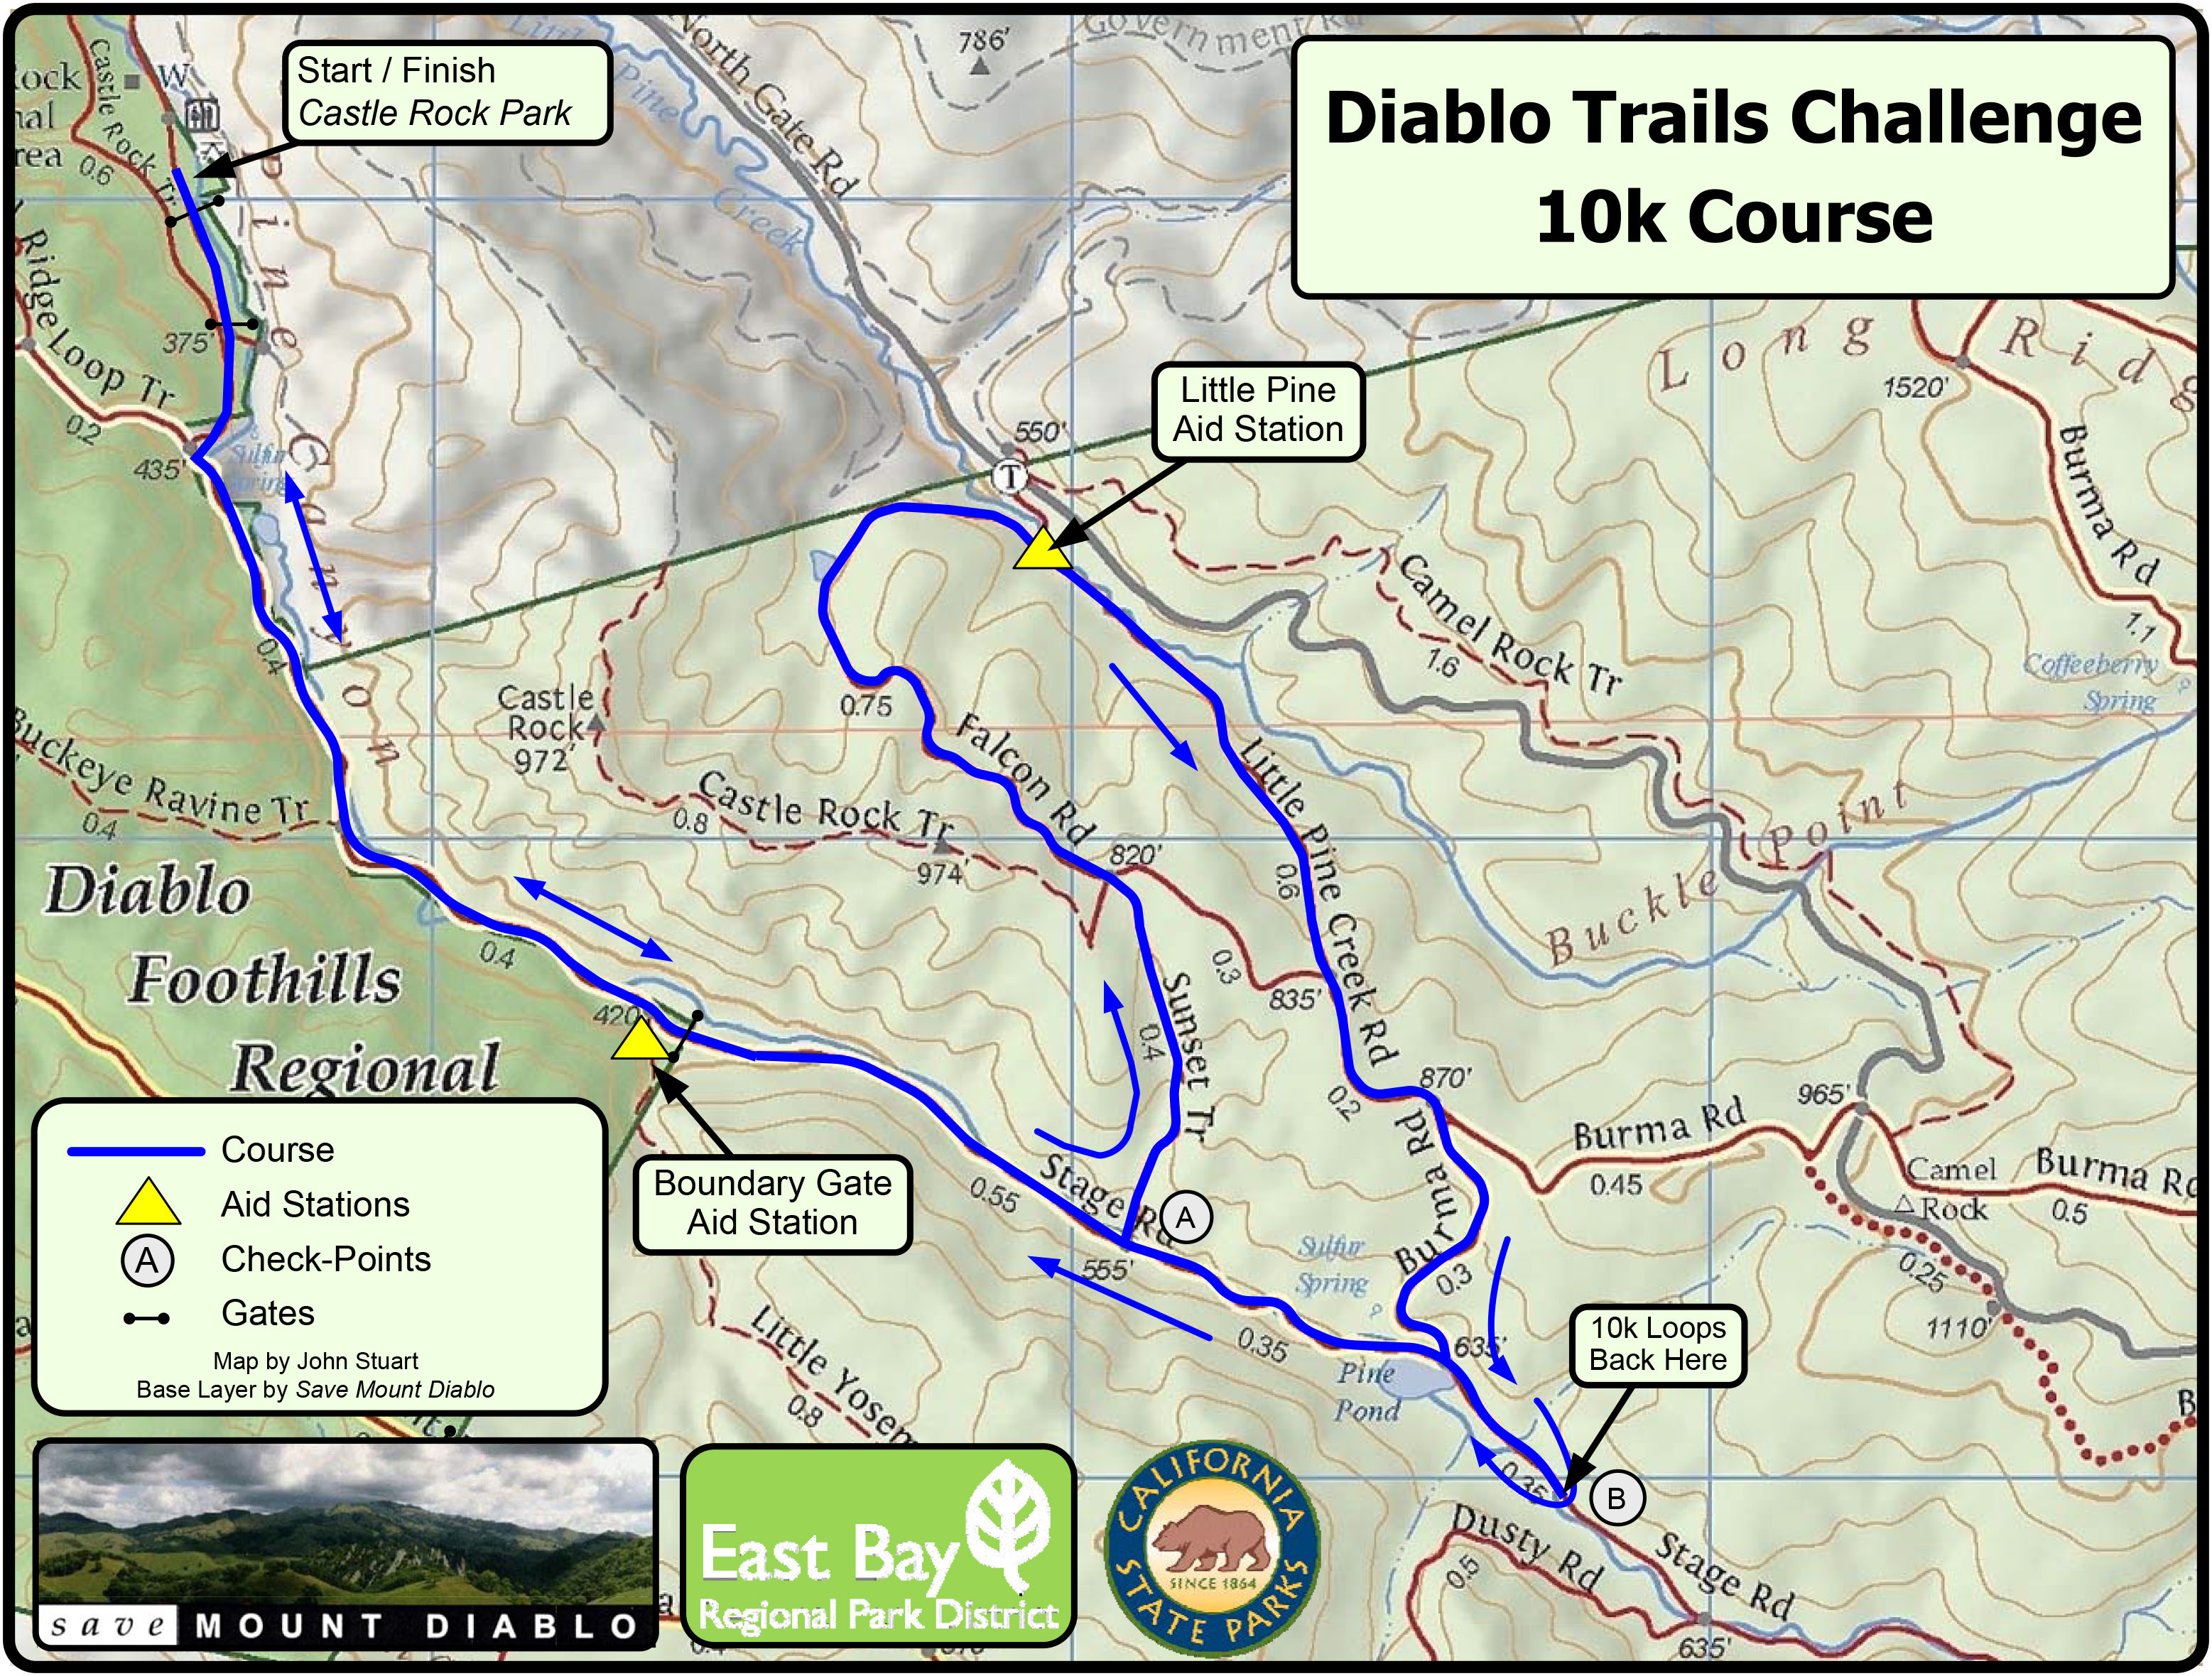 DTC10Kcourse map